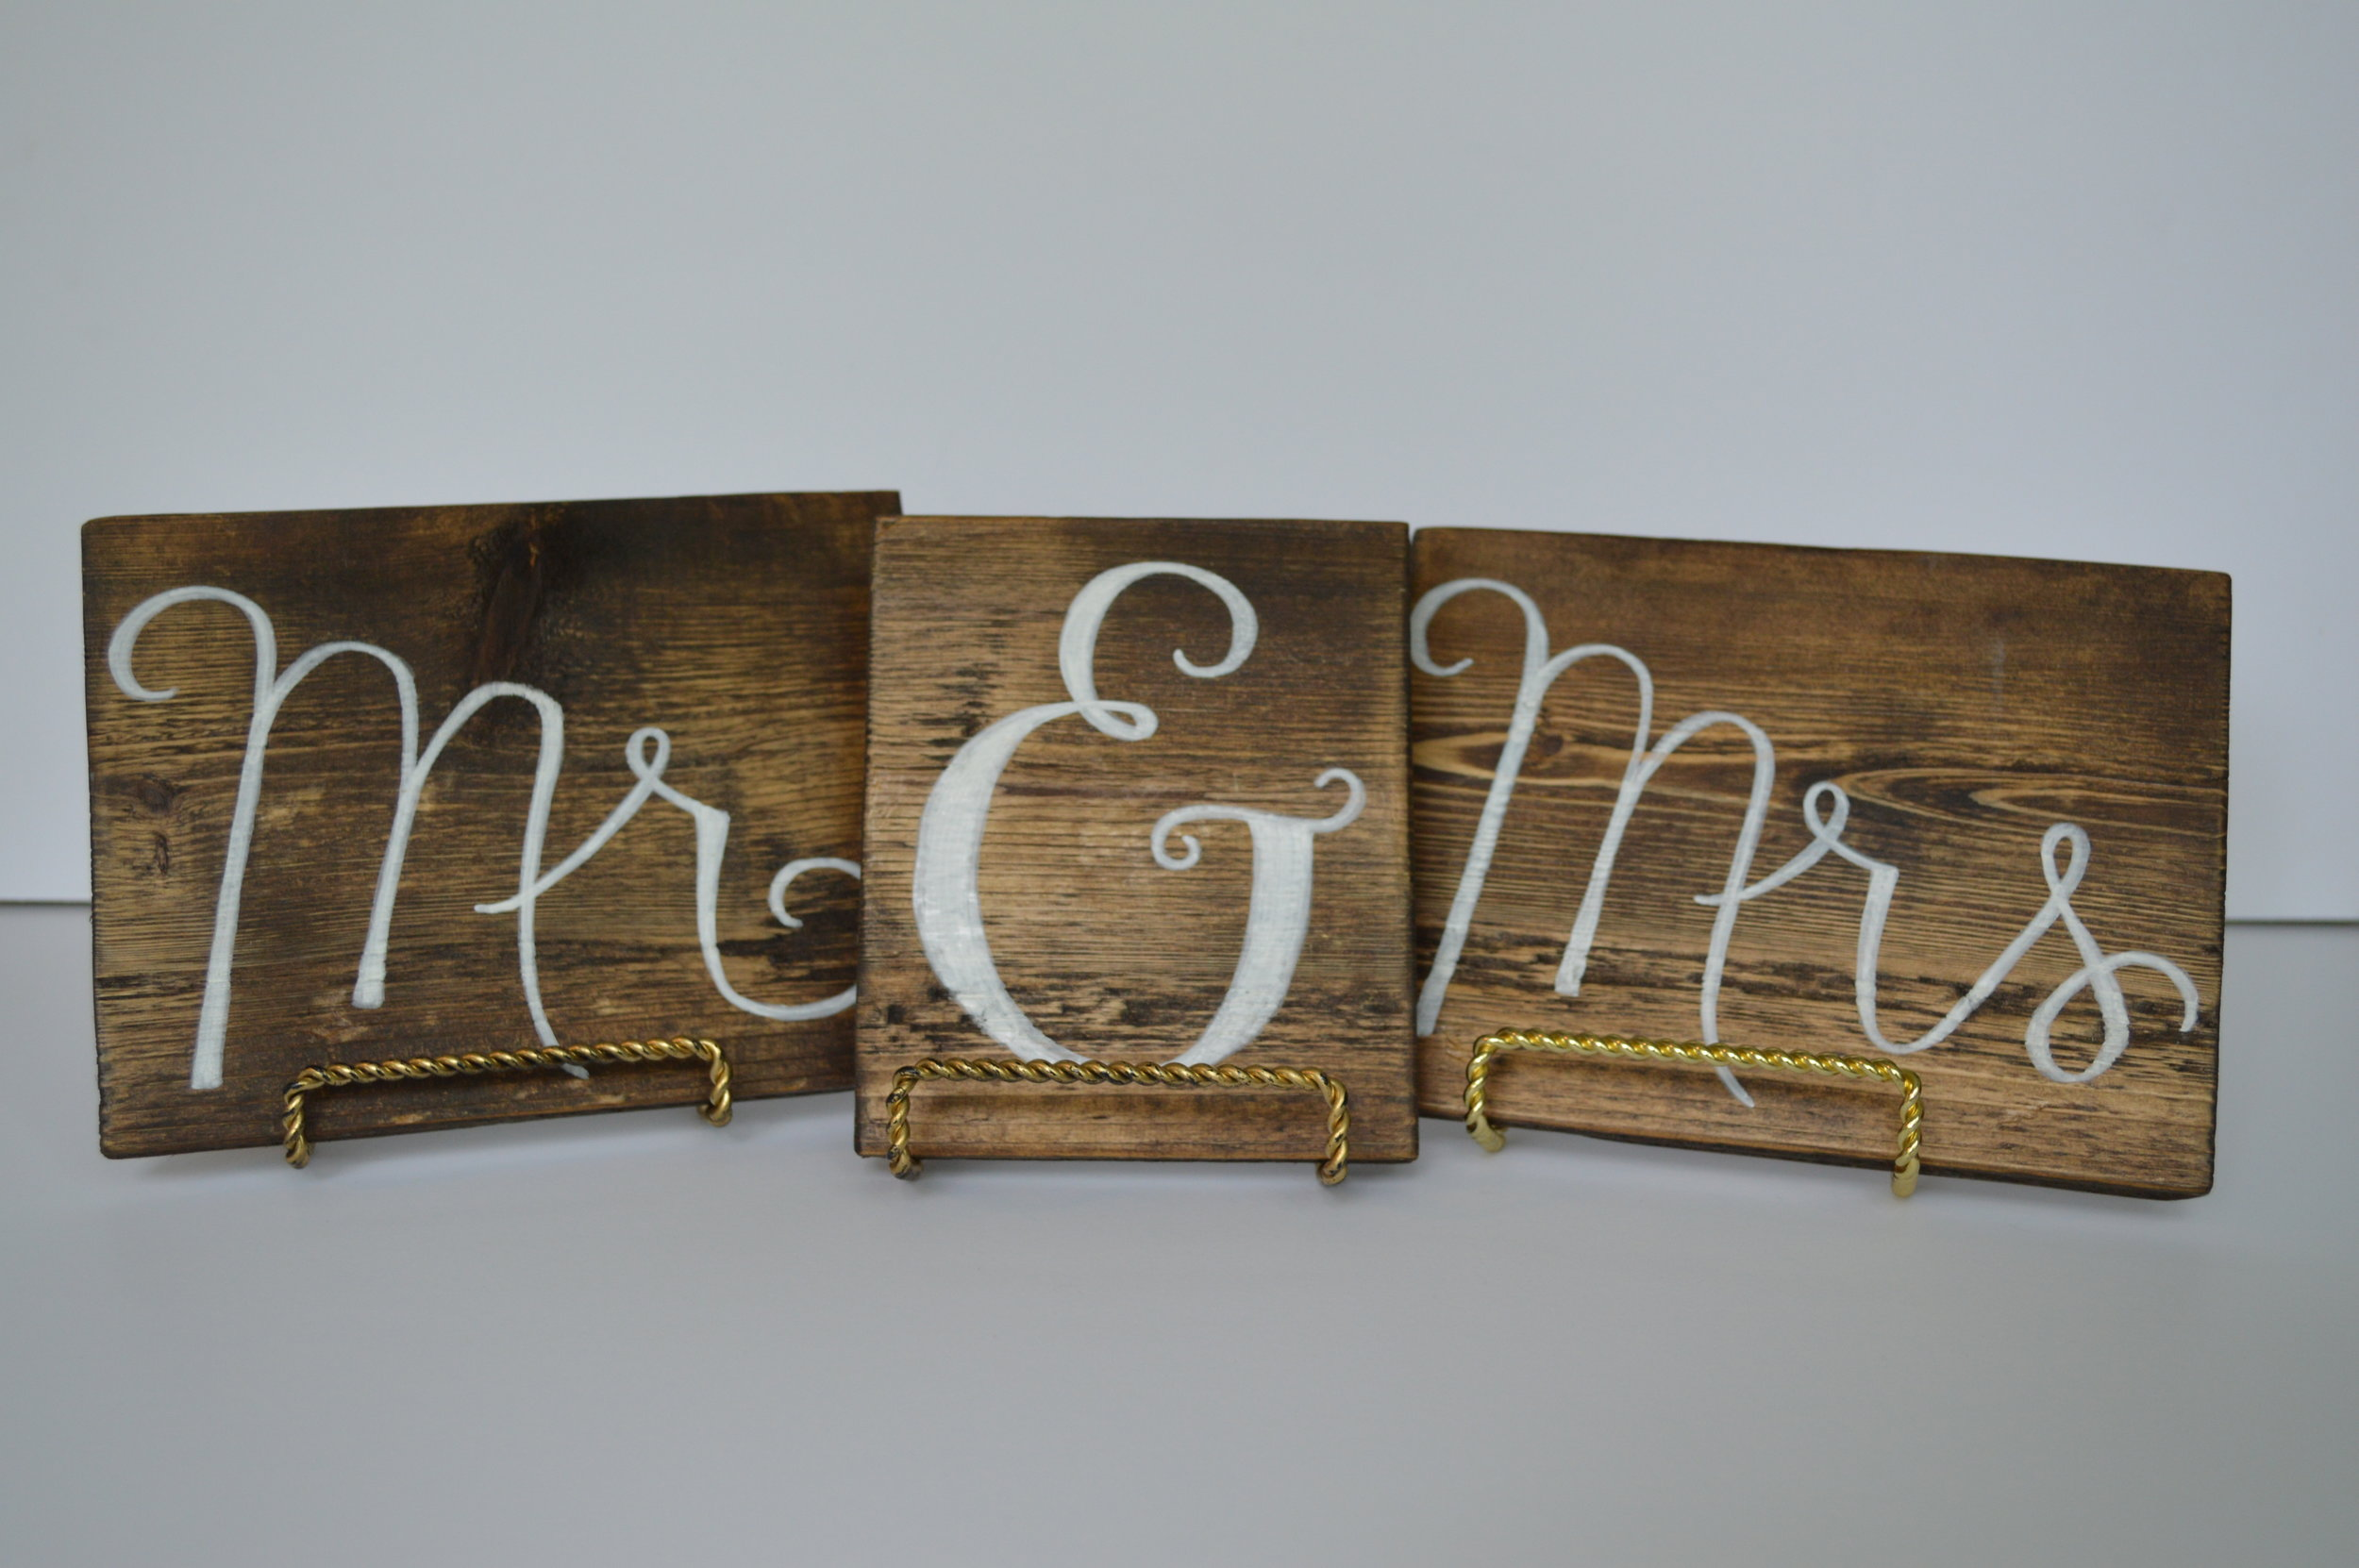 MR & MRS Wood Sign  three pieces with gold stand holders. 5.5 in x 19 in across total length >>$3.00 set<<<